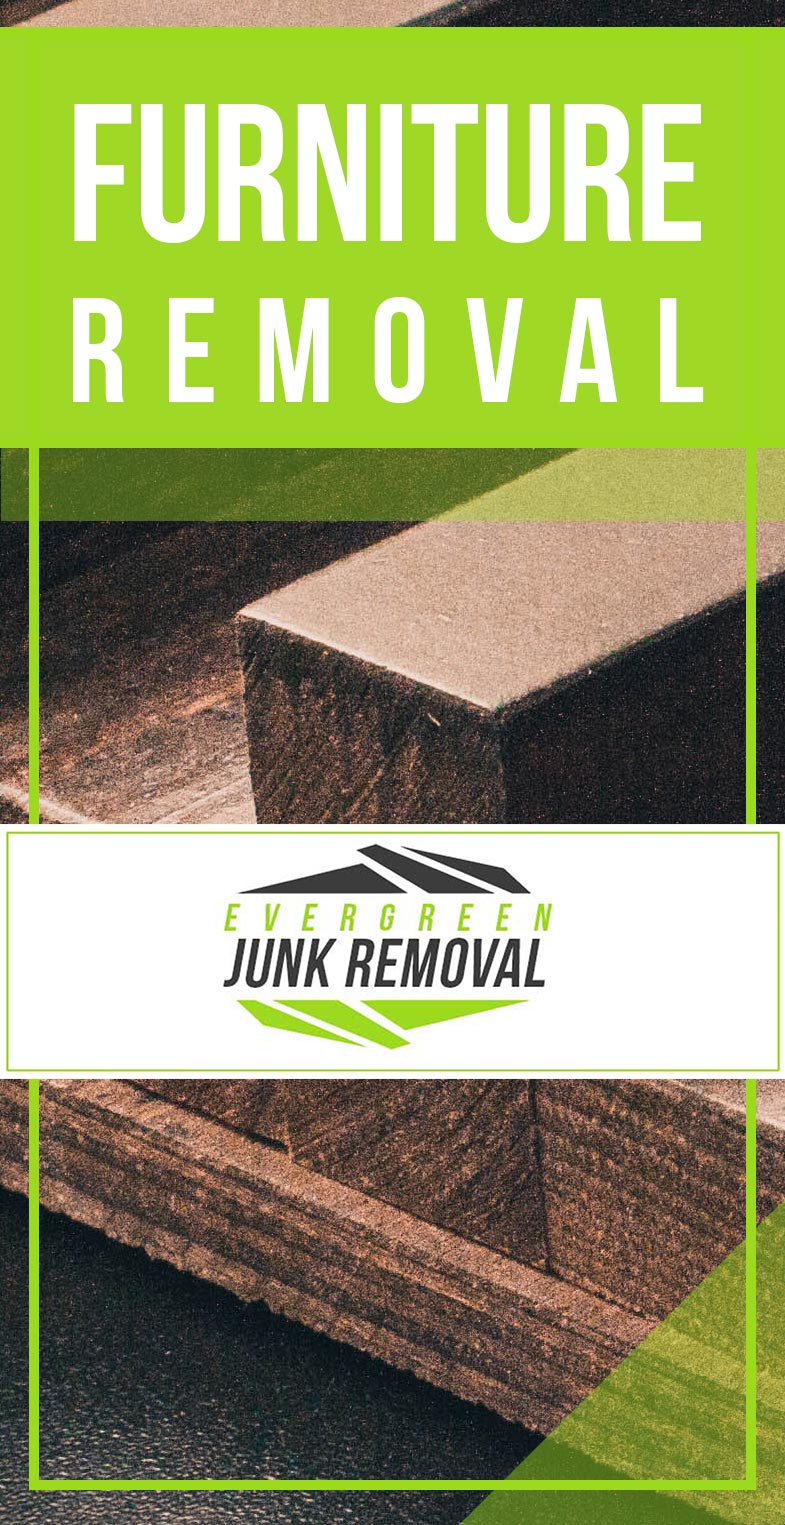 Cloverleaf Furniture Removal